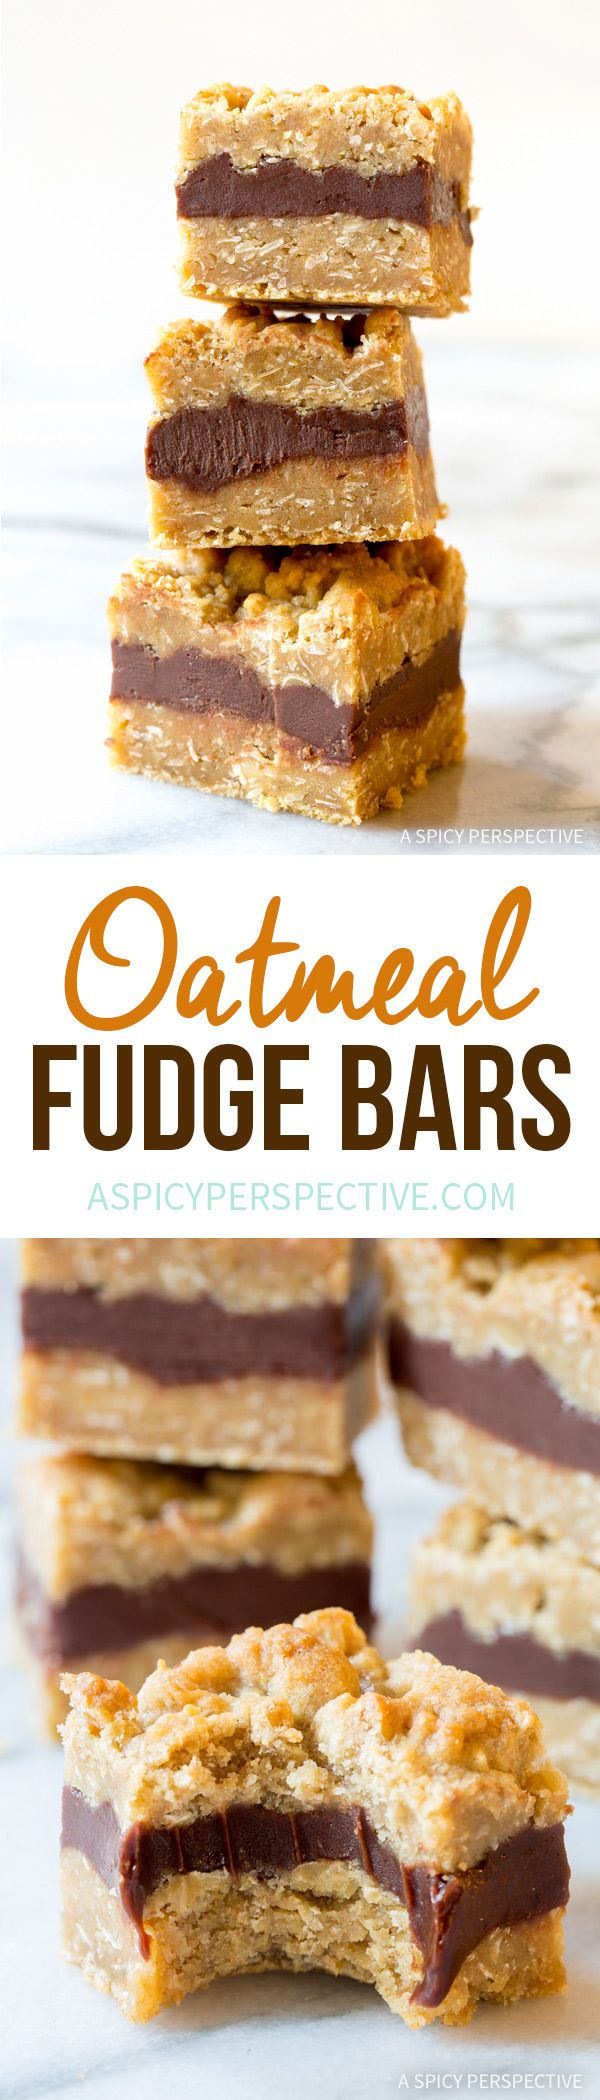 Oatmeal Fudge Bars Recipe | ASpicyPerspective.com